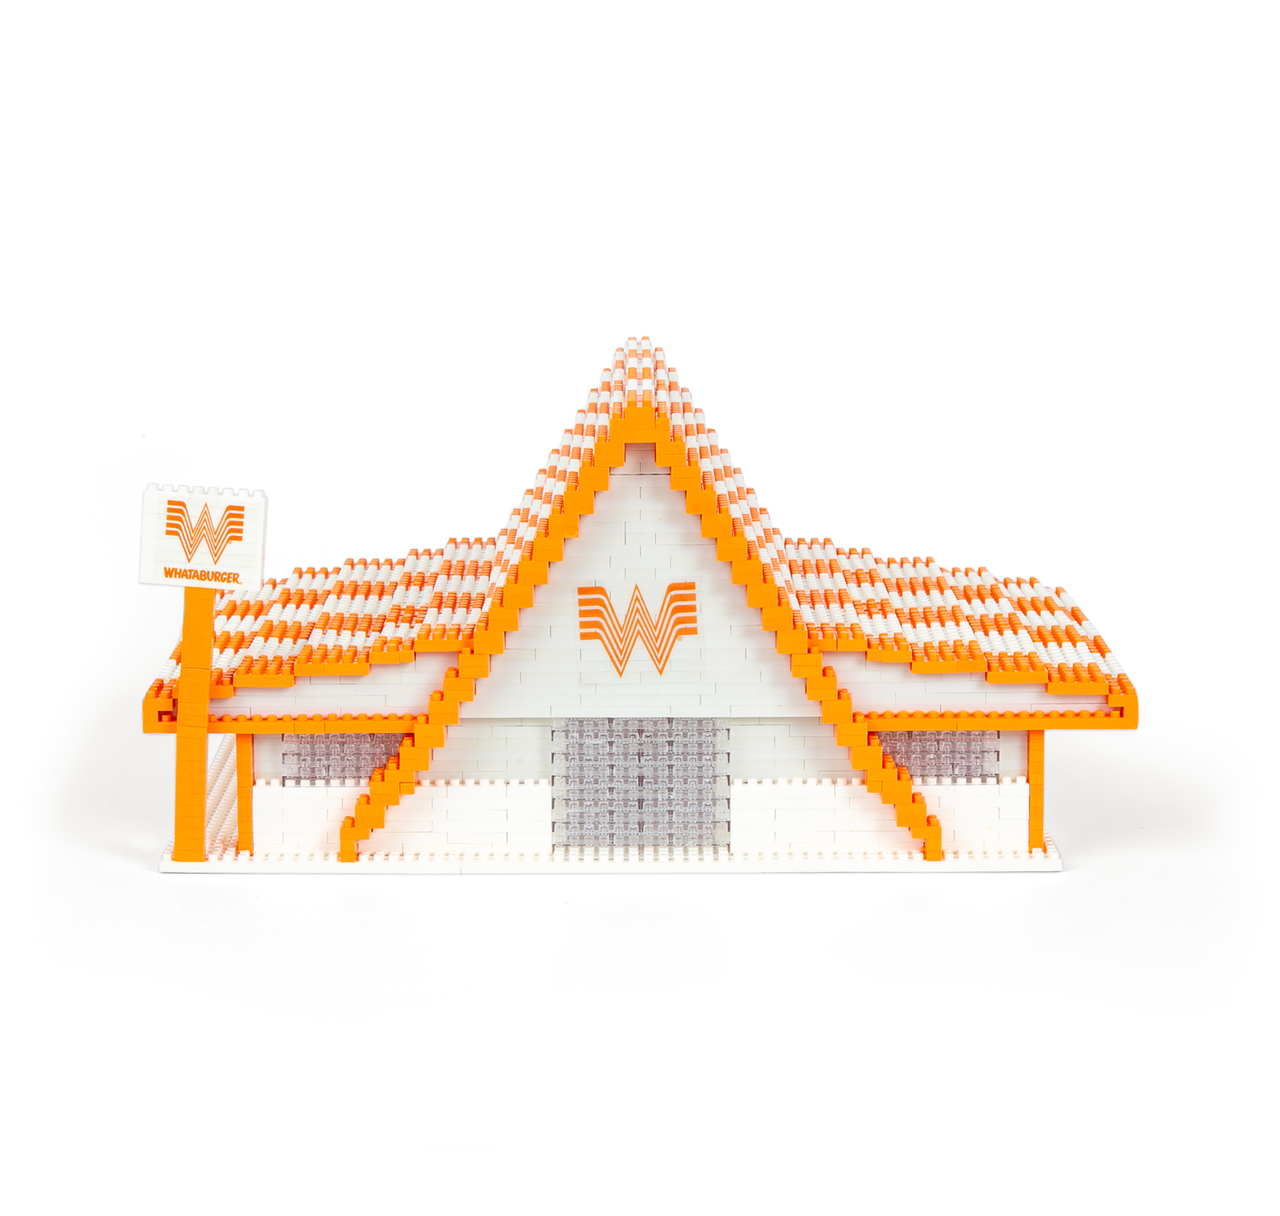 This Whataburger Toy Looks Weirdly Relaxing